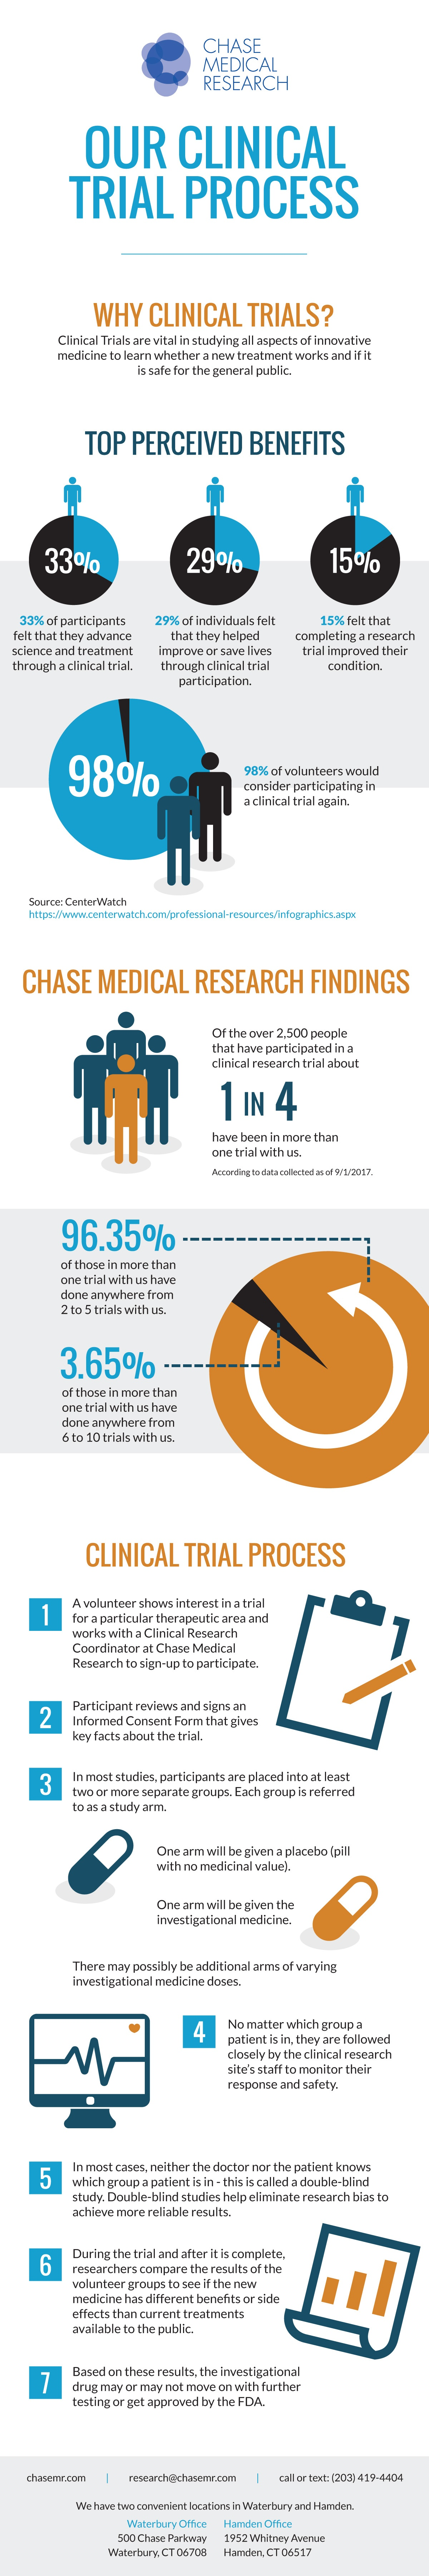 [Infographic] The Chase Medical Research Clinical Trial Process